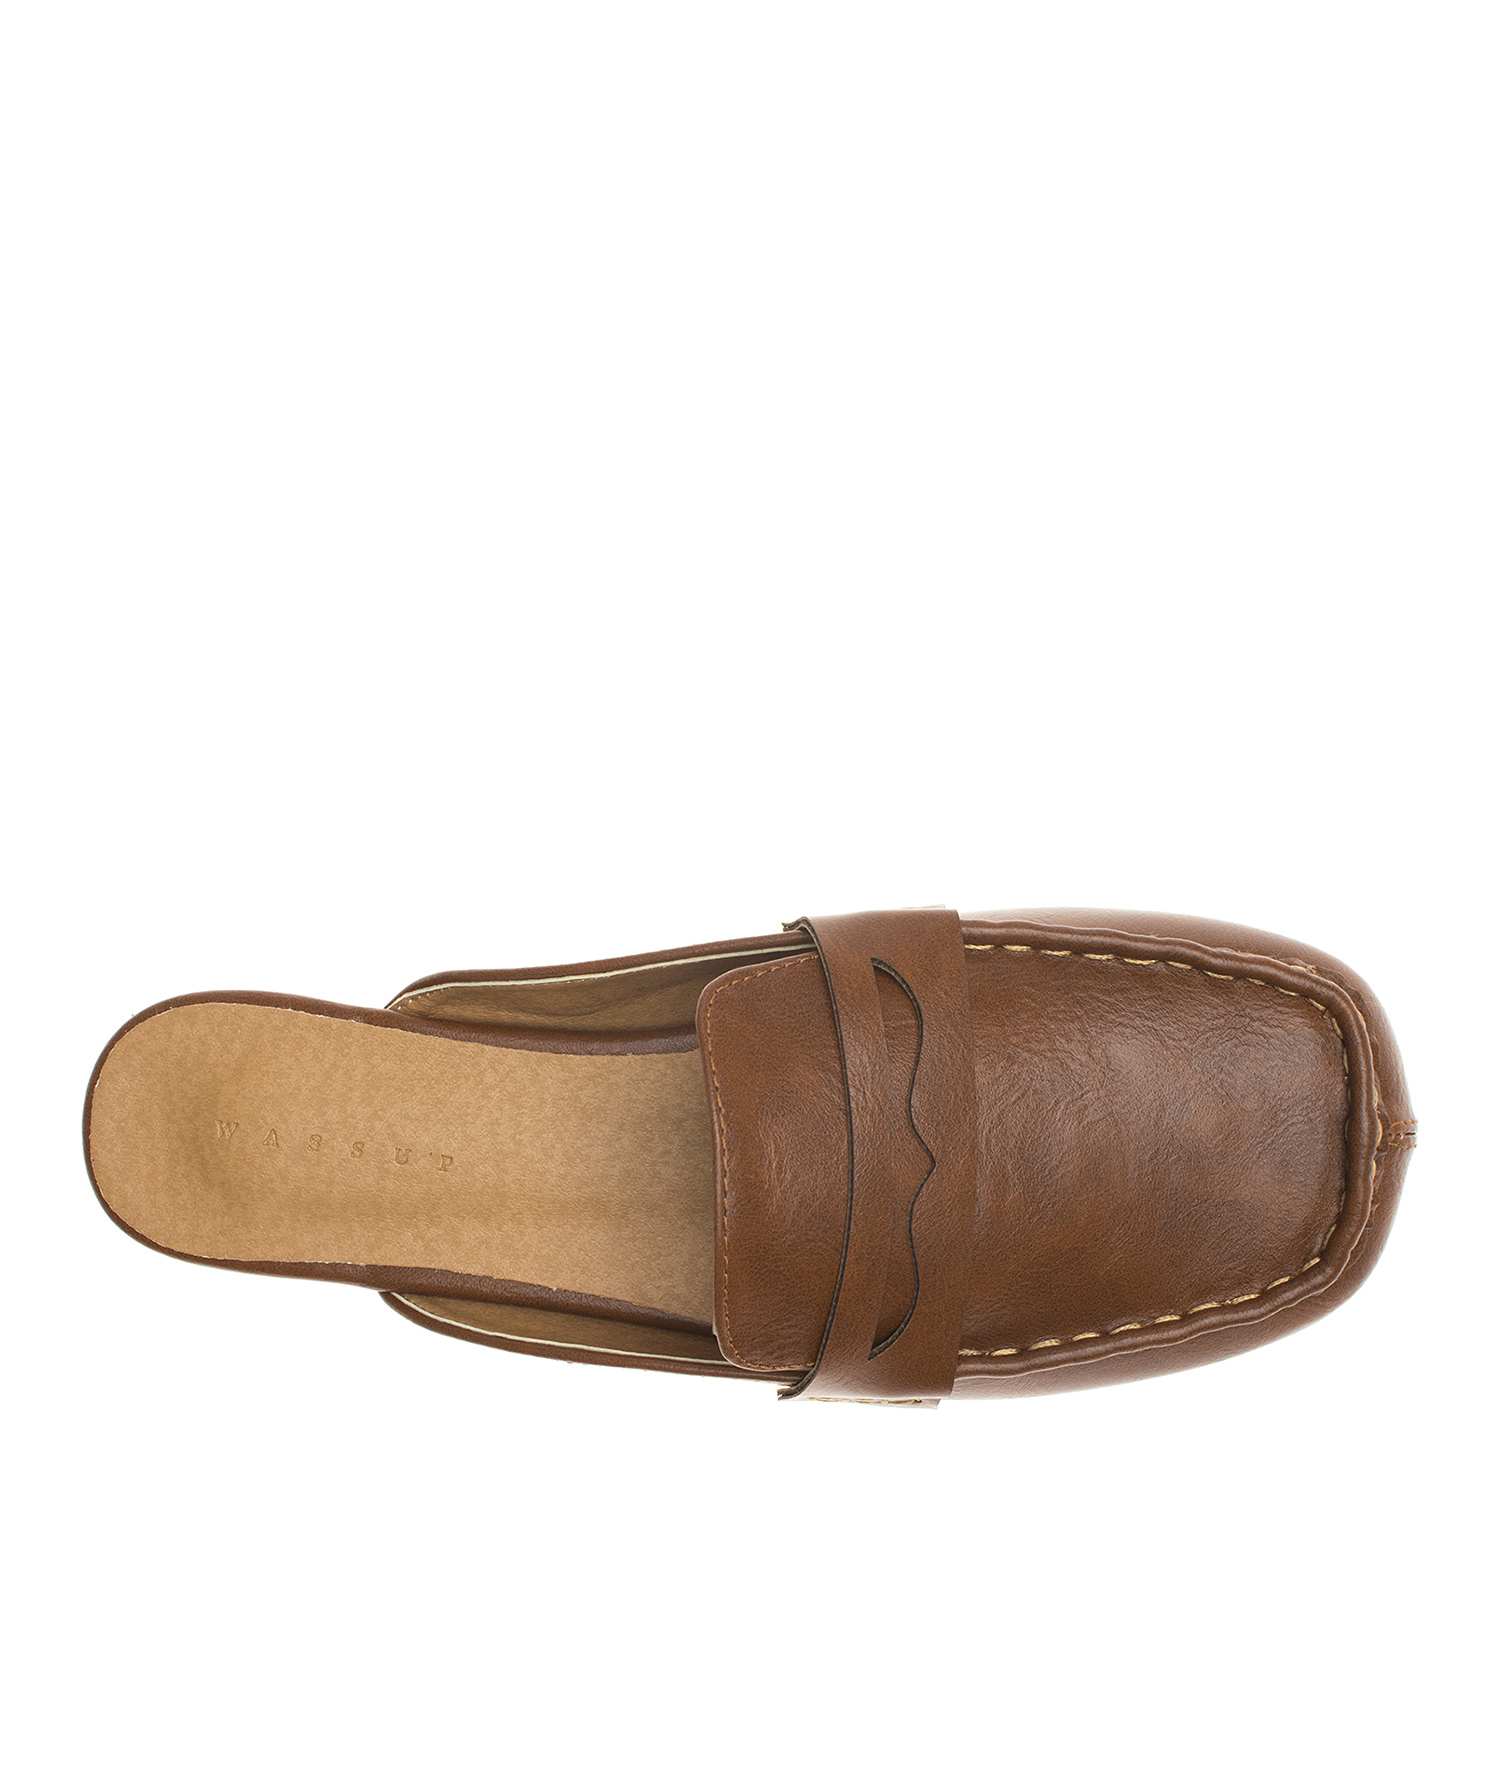 bde5beb4352 AnnaKastle Womens Squared Toe Penny Loafer Mules Brown